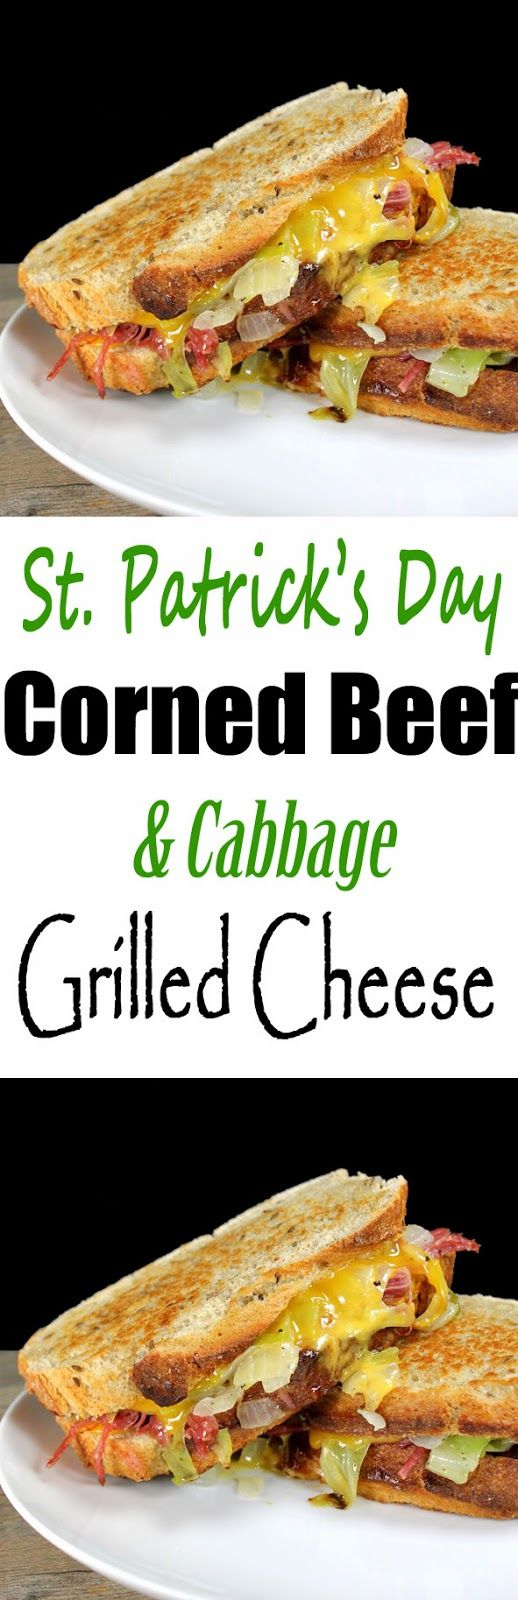 Corned Beef and Cabbage Grilled Cheese. The perfect St. Patrick's Day sandwich!